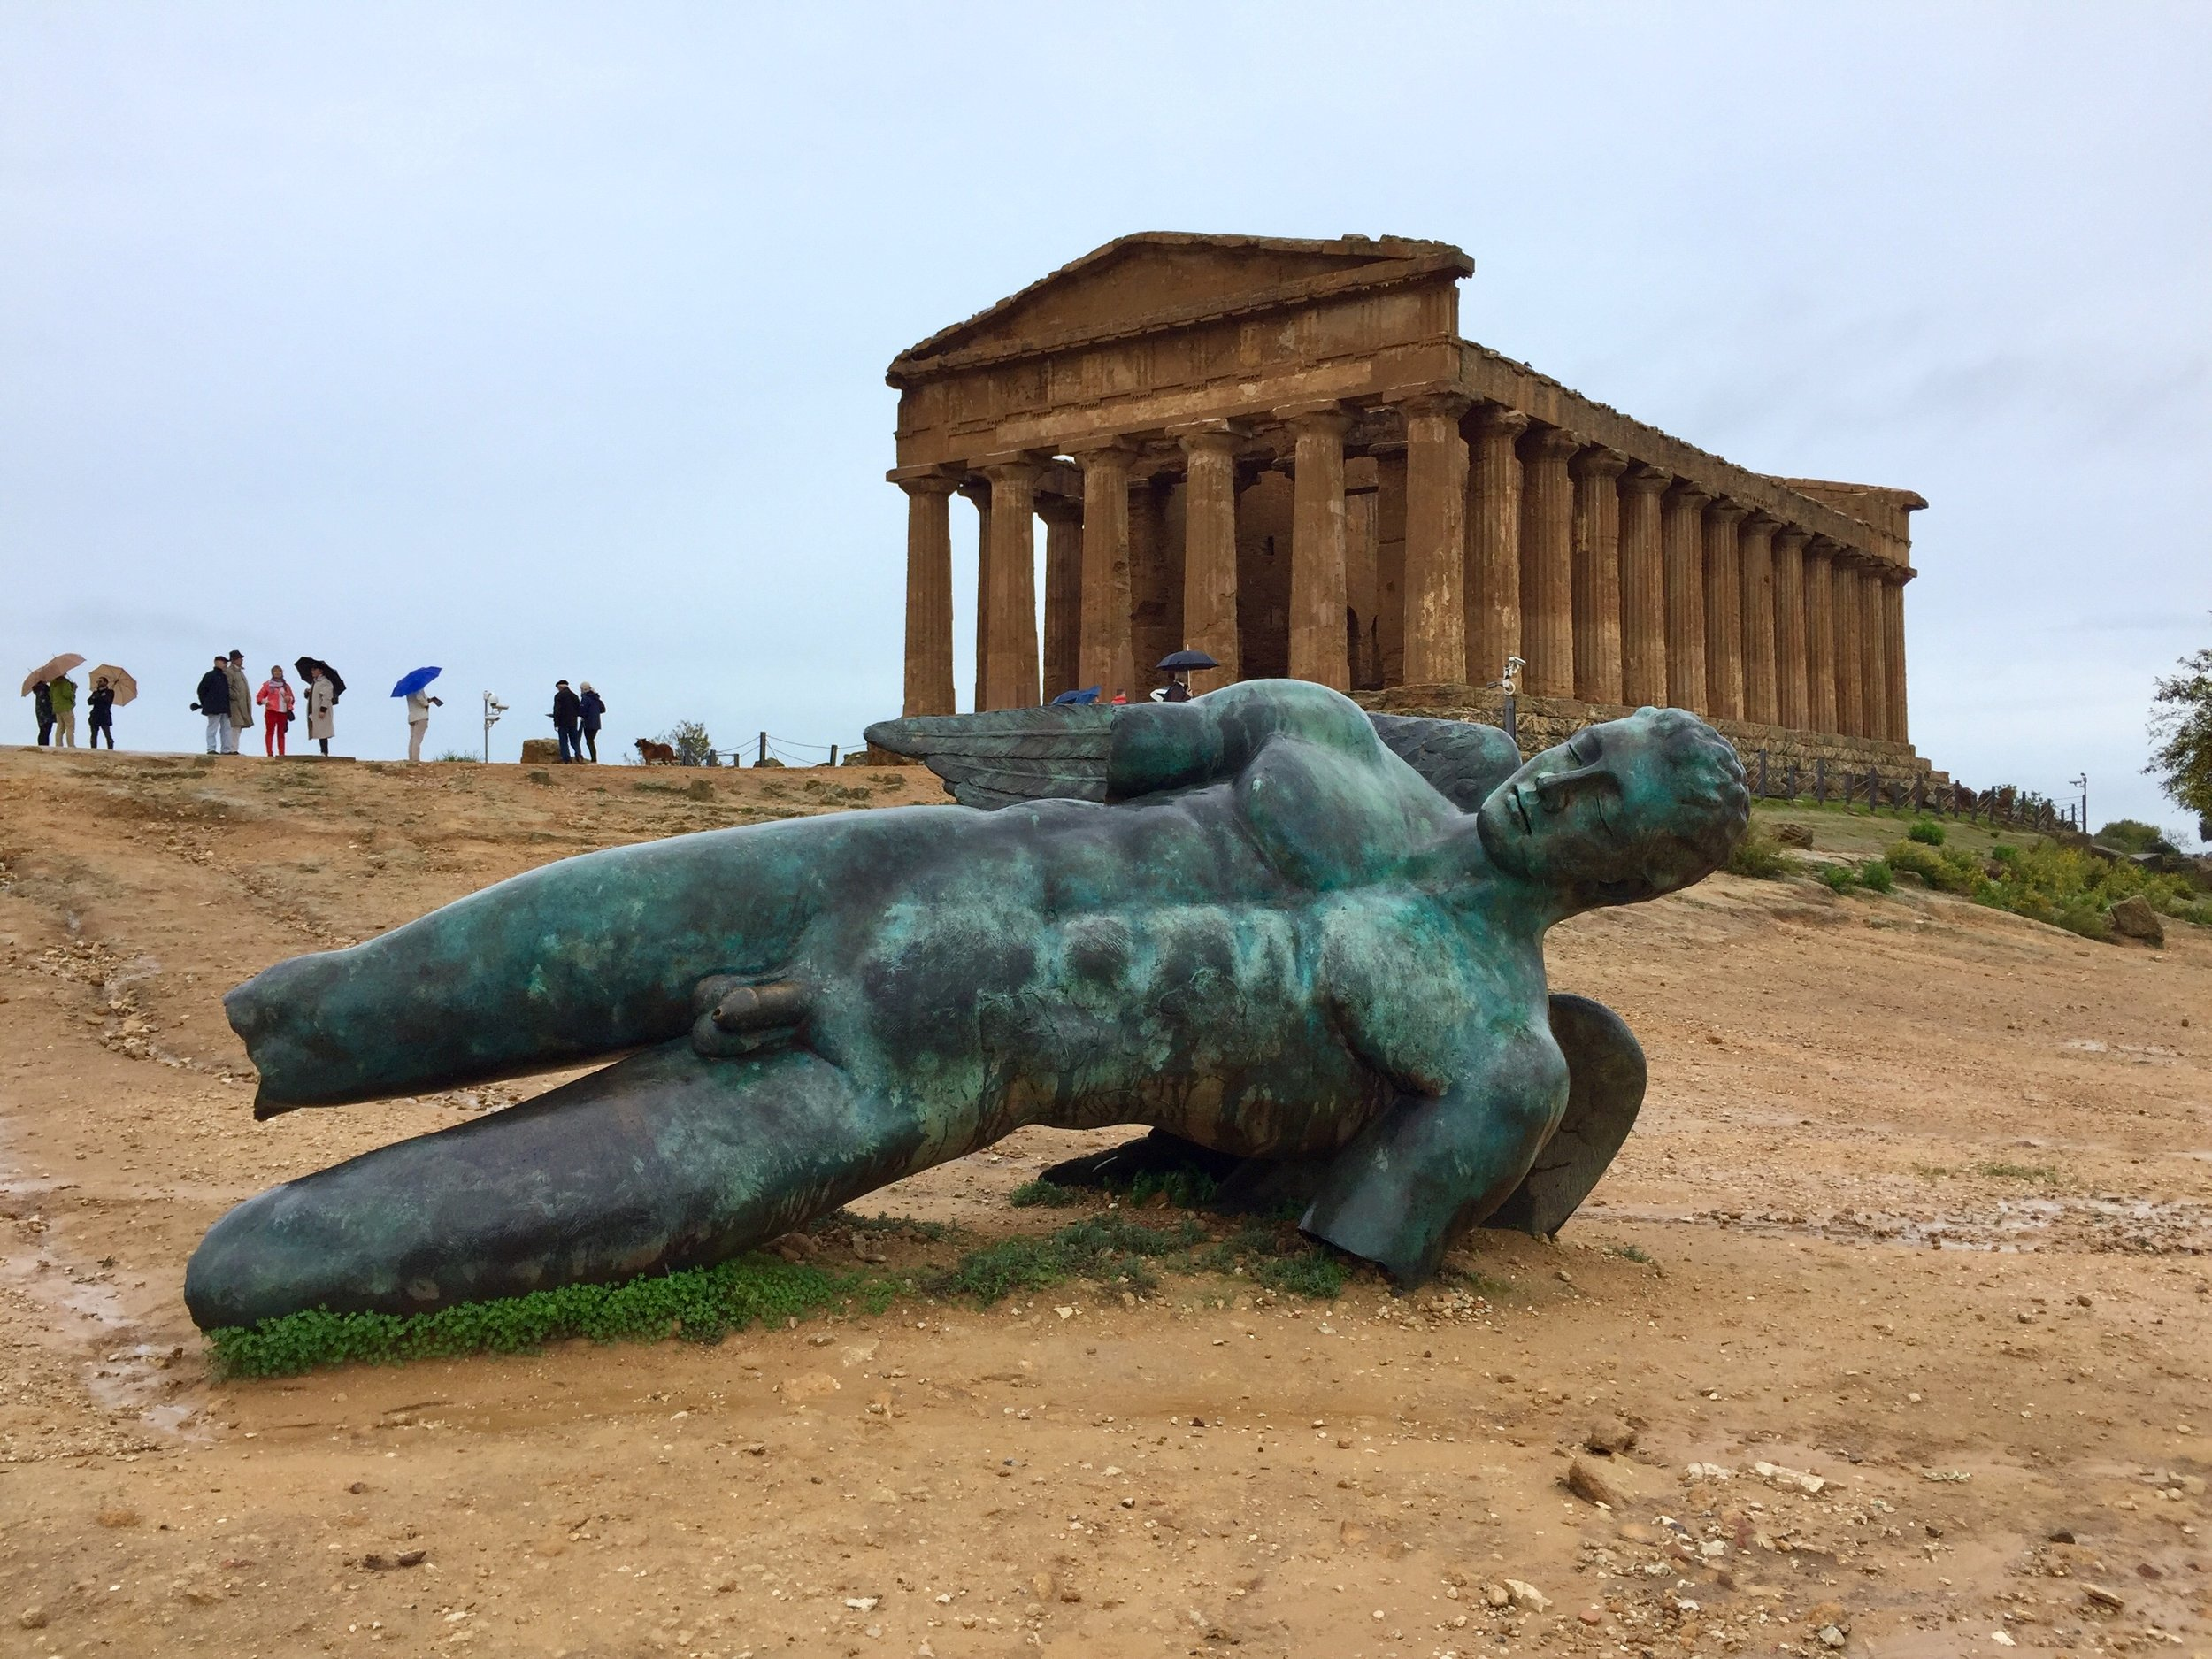 One of the many Greek building still standing in the Valley of the Temples, Agrigento, Sicily, Italy,